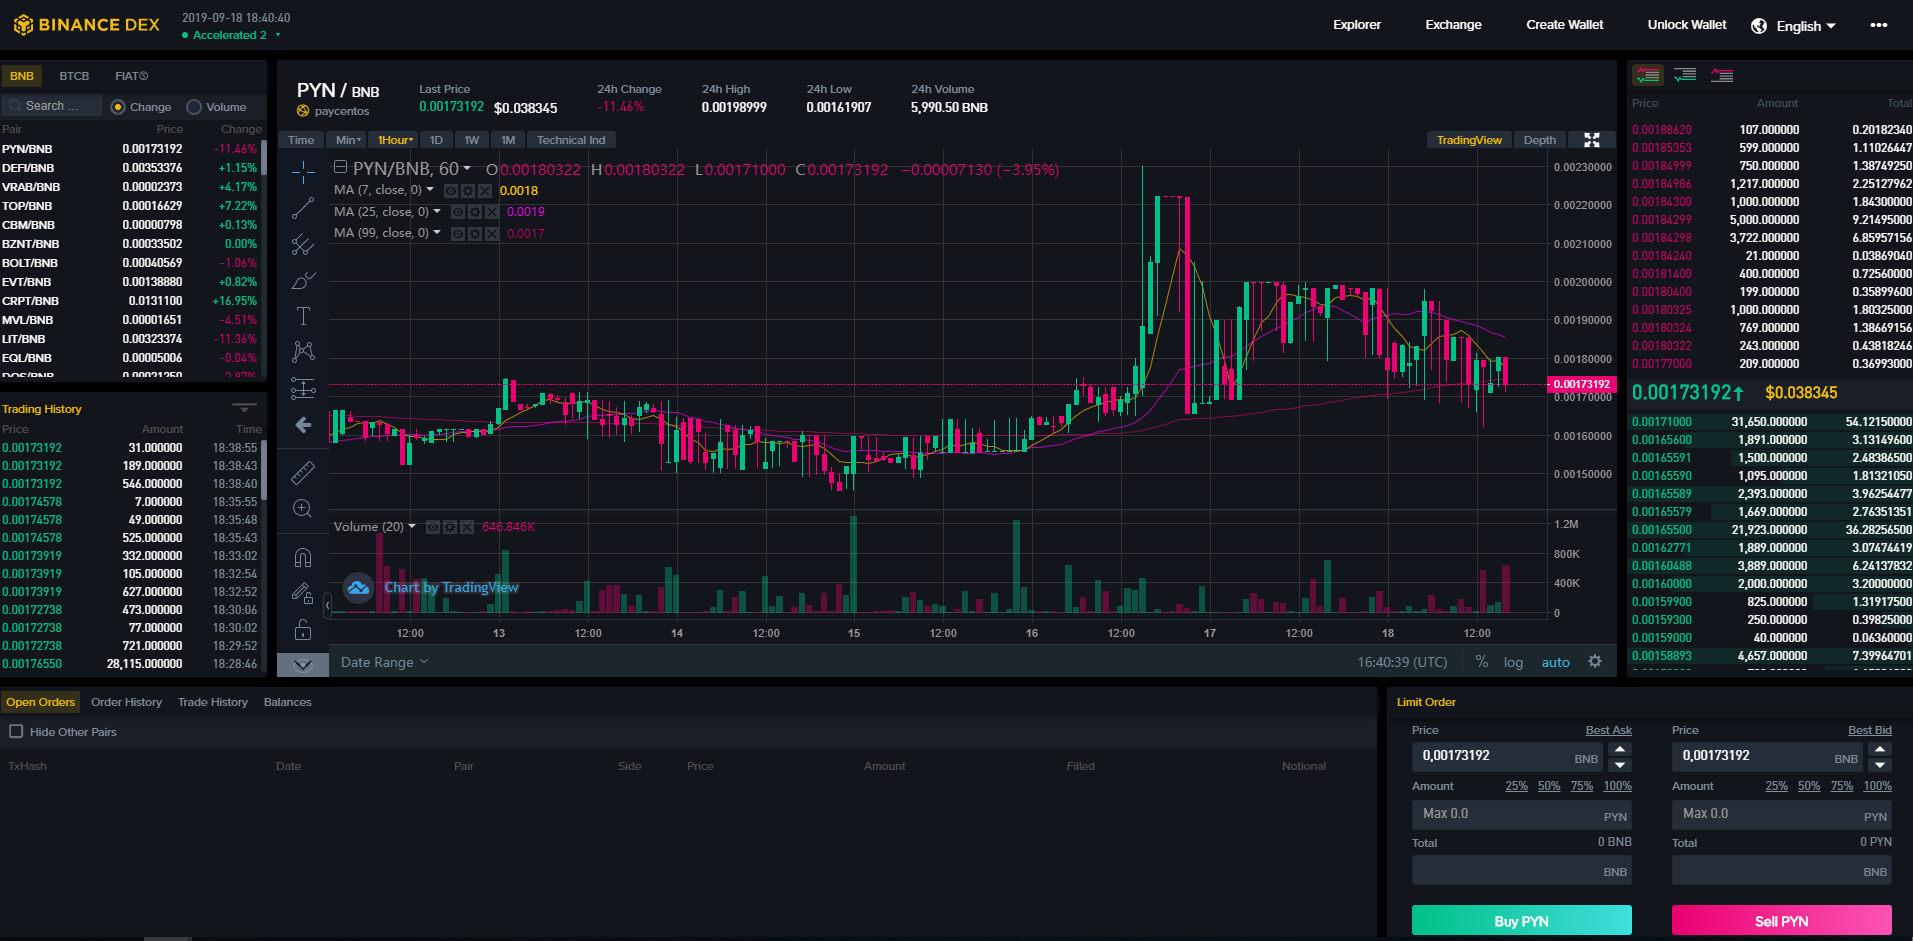 Binance DEX Trading View